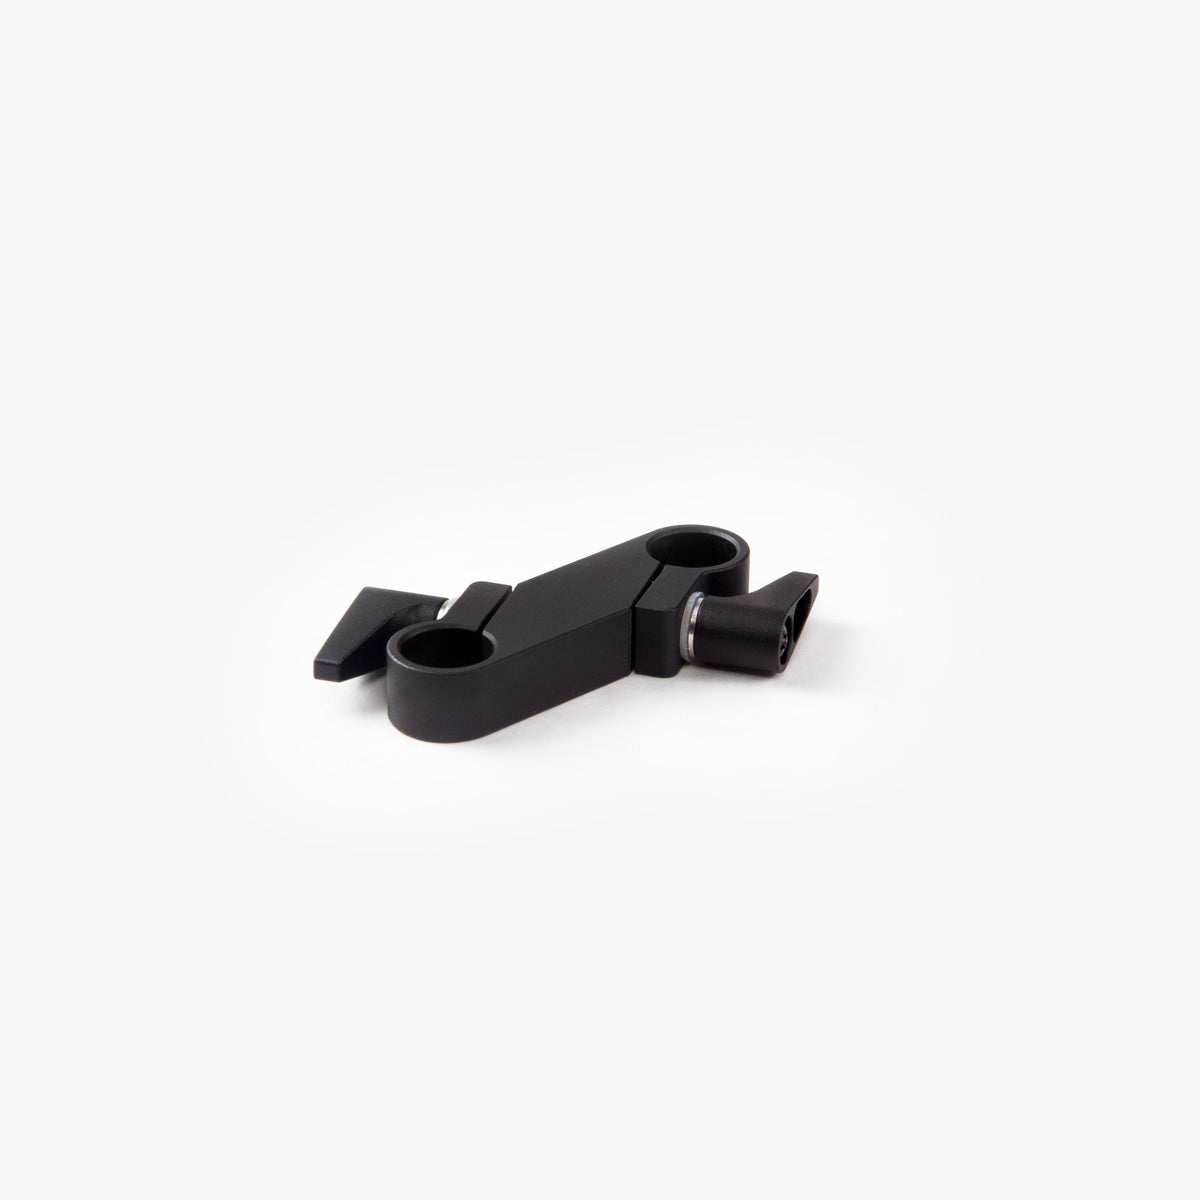 13mm Double Clamp Mount